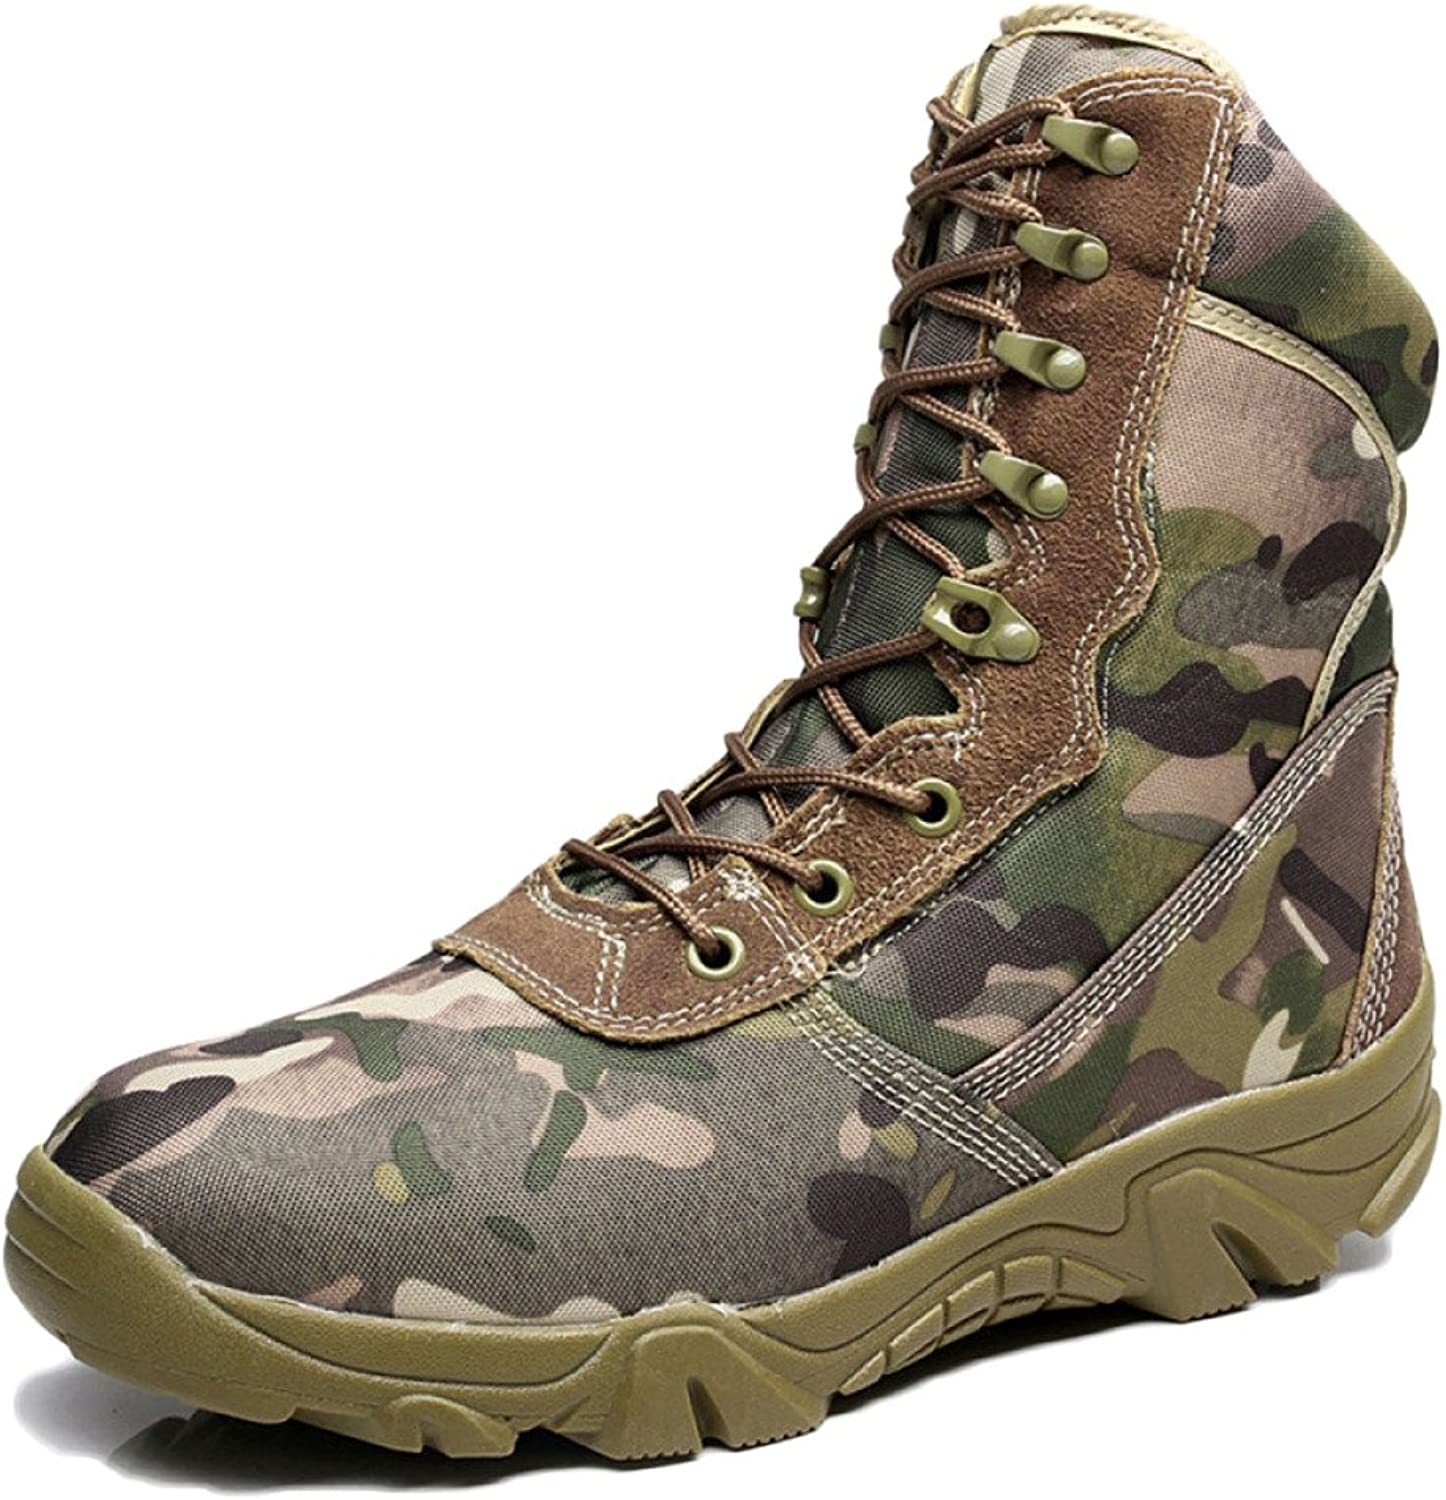 QIKAI Tactical Boots Zip Camouflage Military Boots Commando High Boots Desert Boots Autumn and Winter Hiking shoes